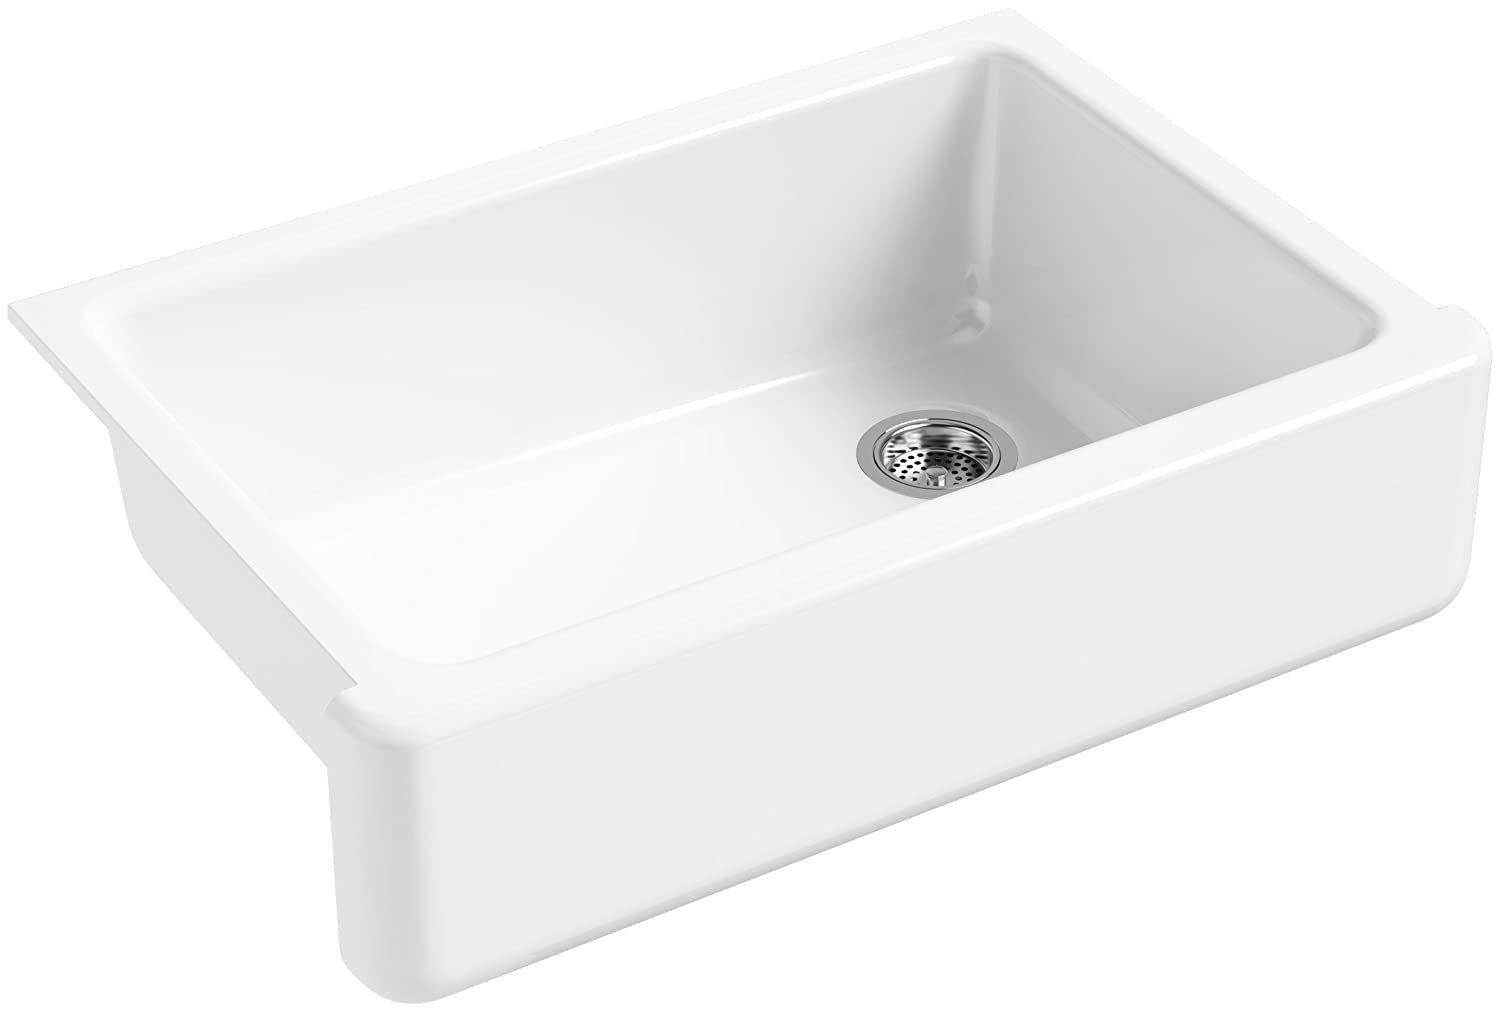 KOHLER K-5827-0 Whitehaven Self-Trimming Under-Mount Single-Bowl Sink ...